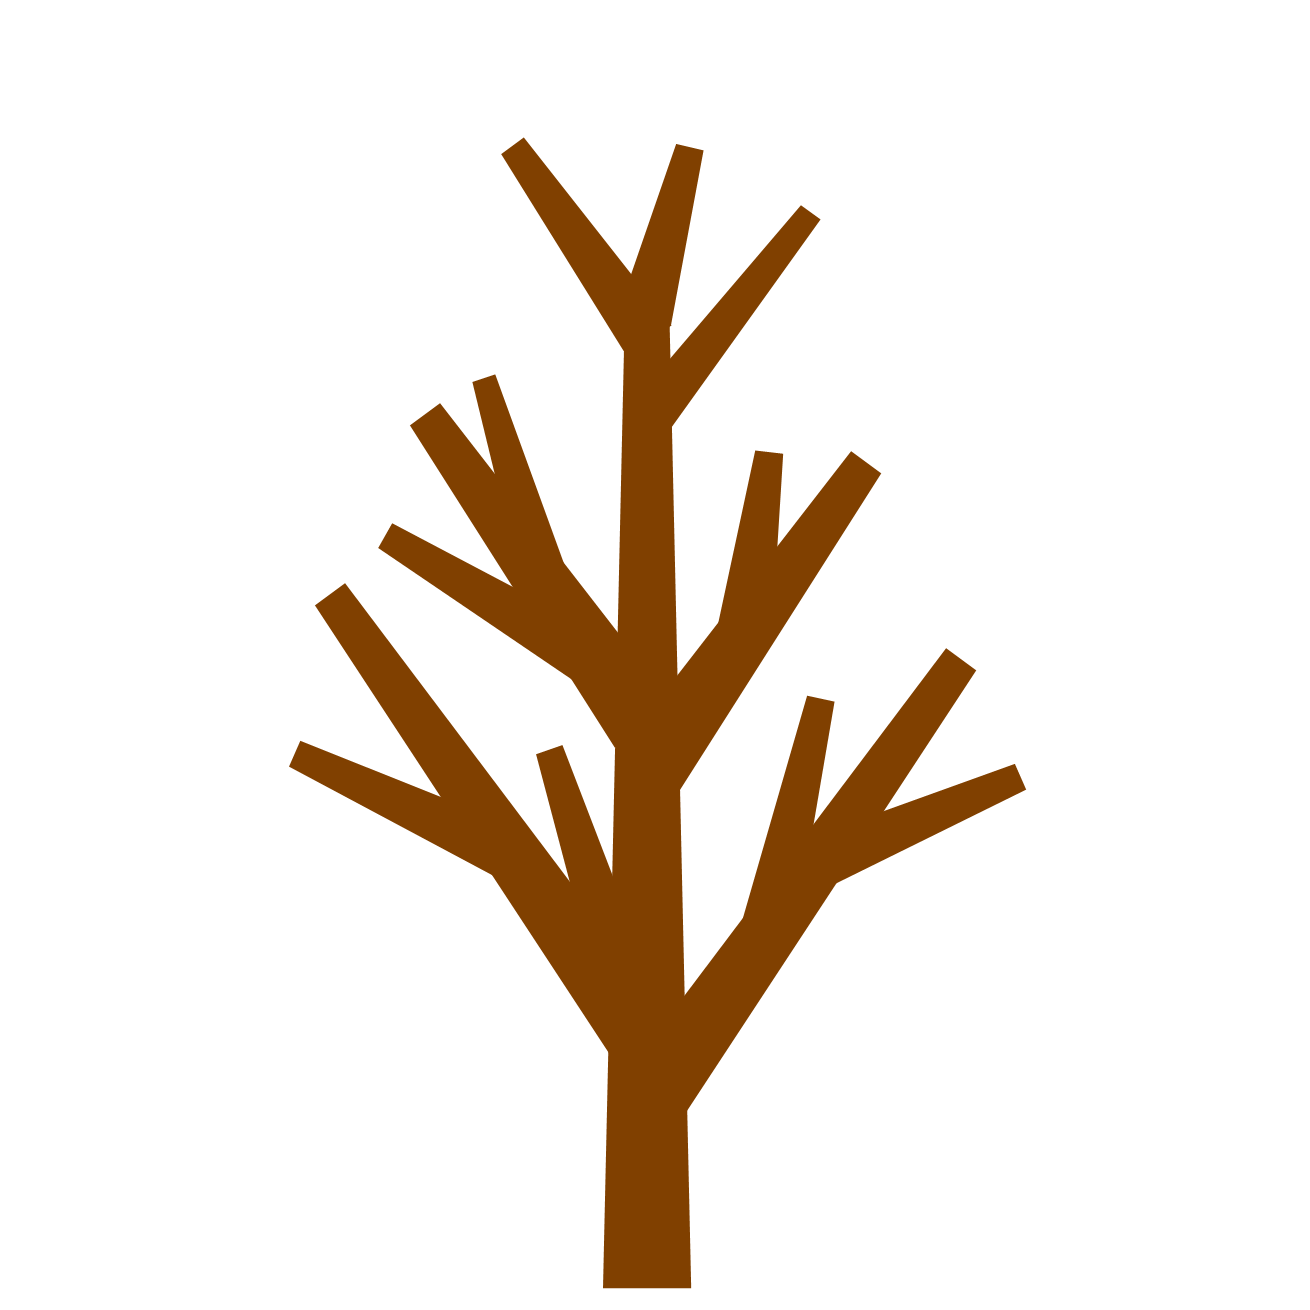 Free Tree Without Leaves Png, Download Free Clip Art, Free.